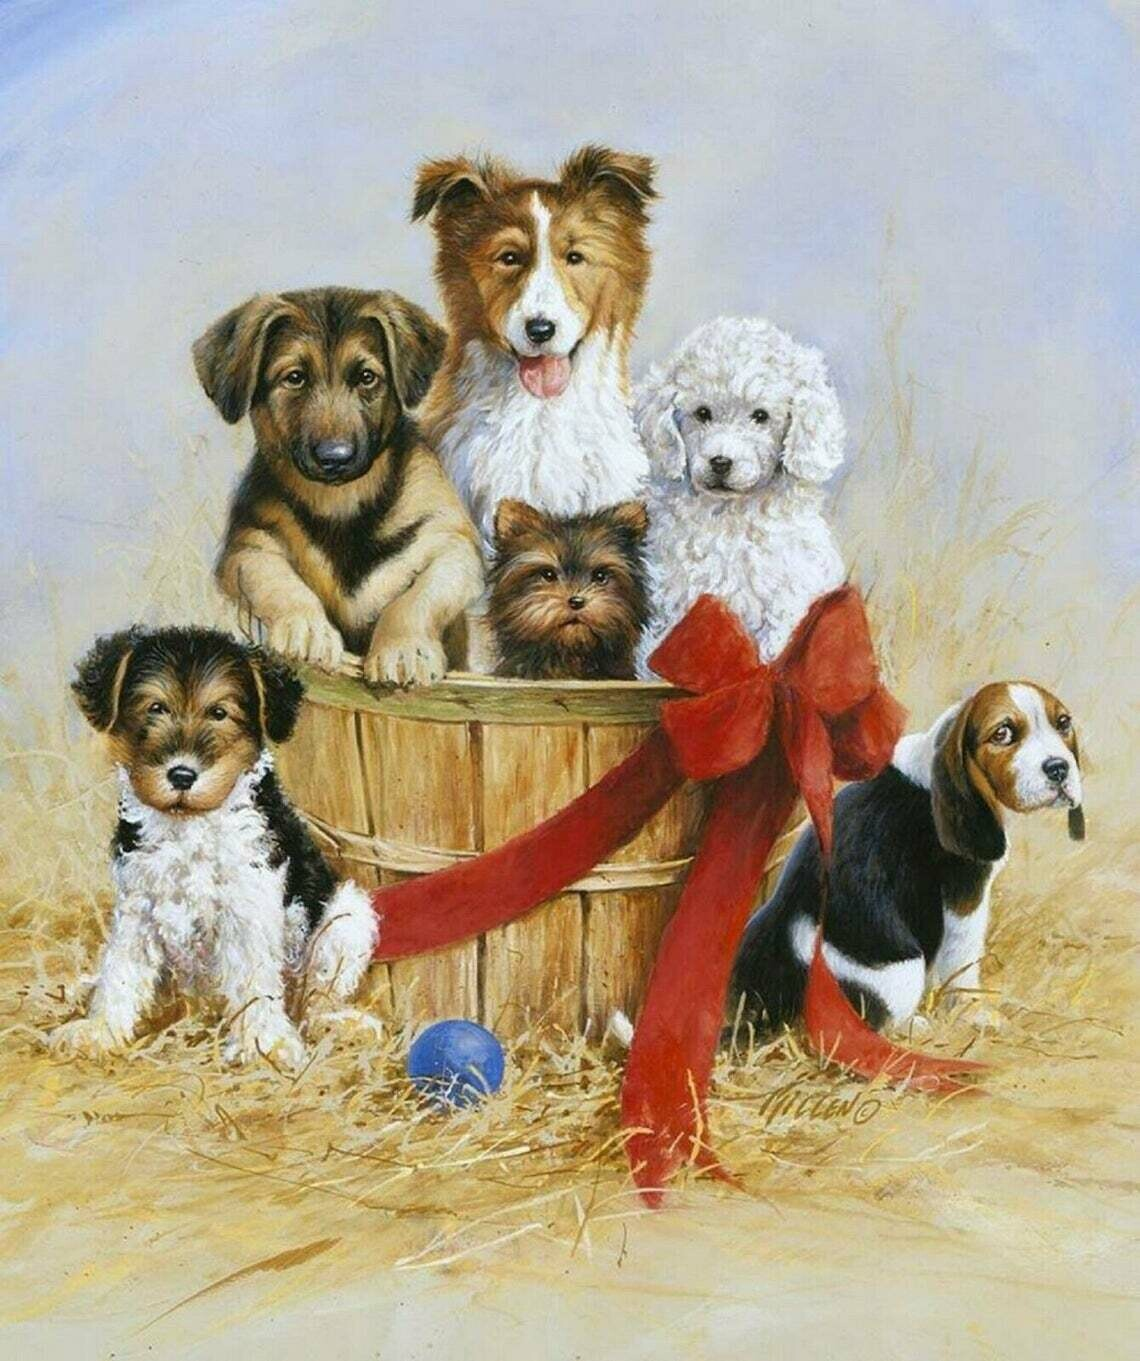 Wild & Playful Puppies - Riley Blake - PANEL